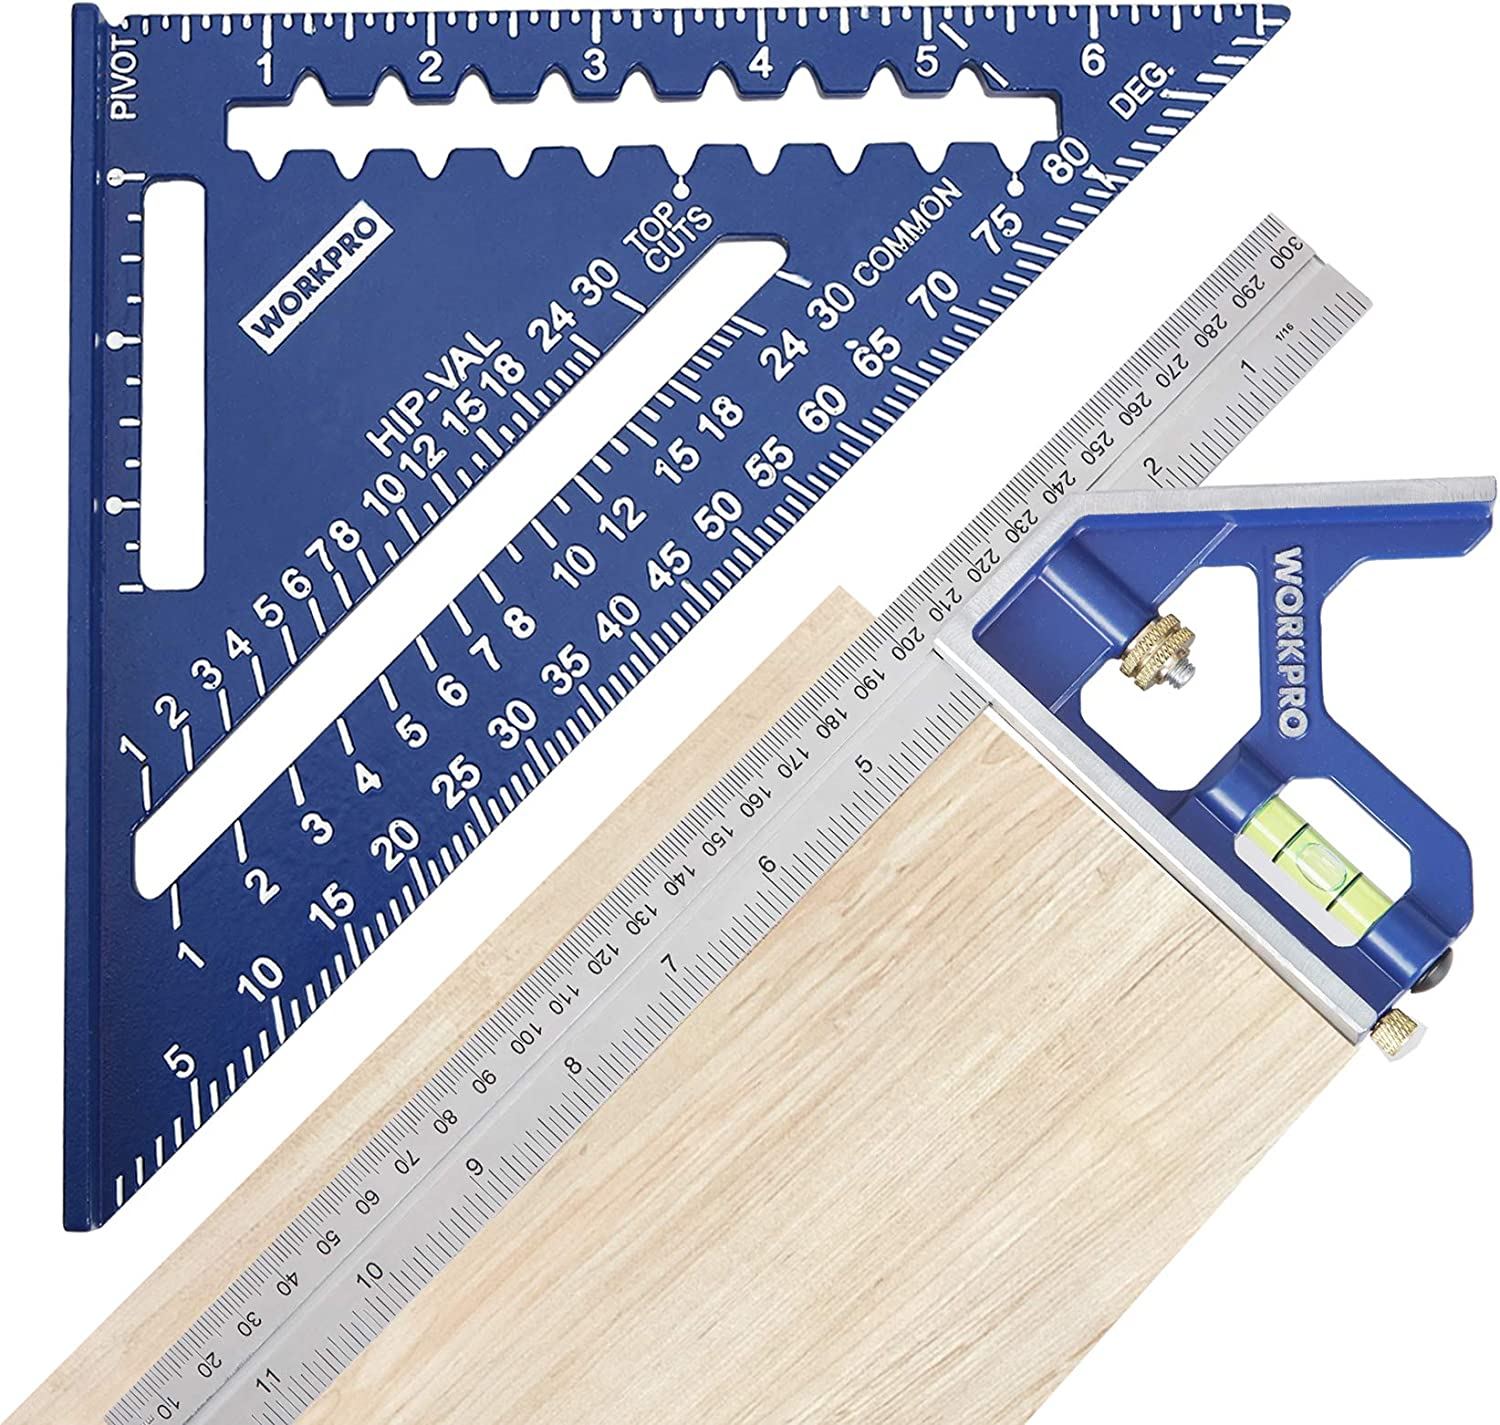 Workpro Rafter Square and Combination Square Tool Set